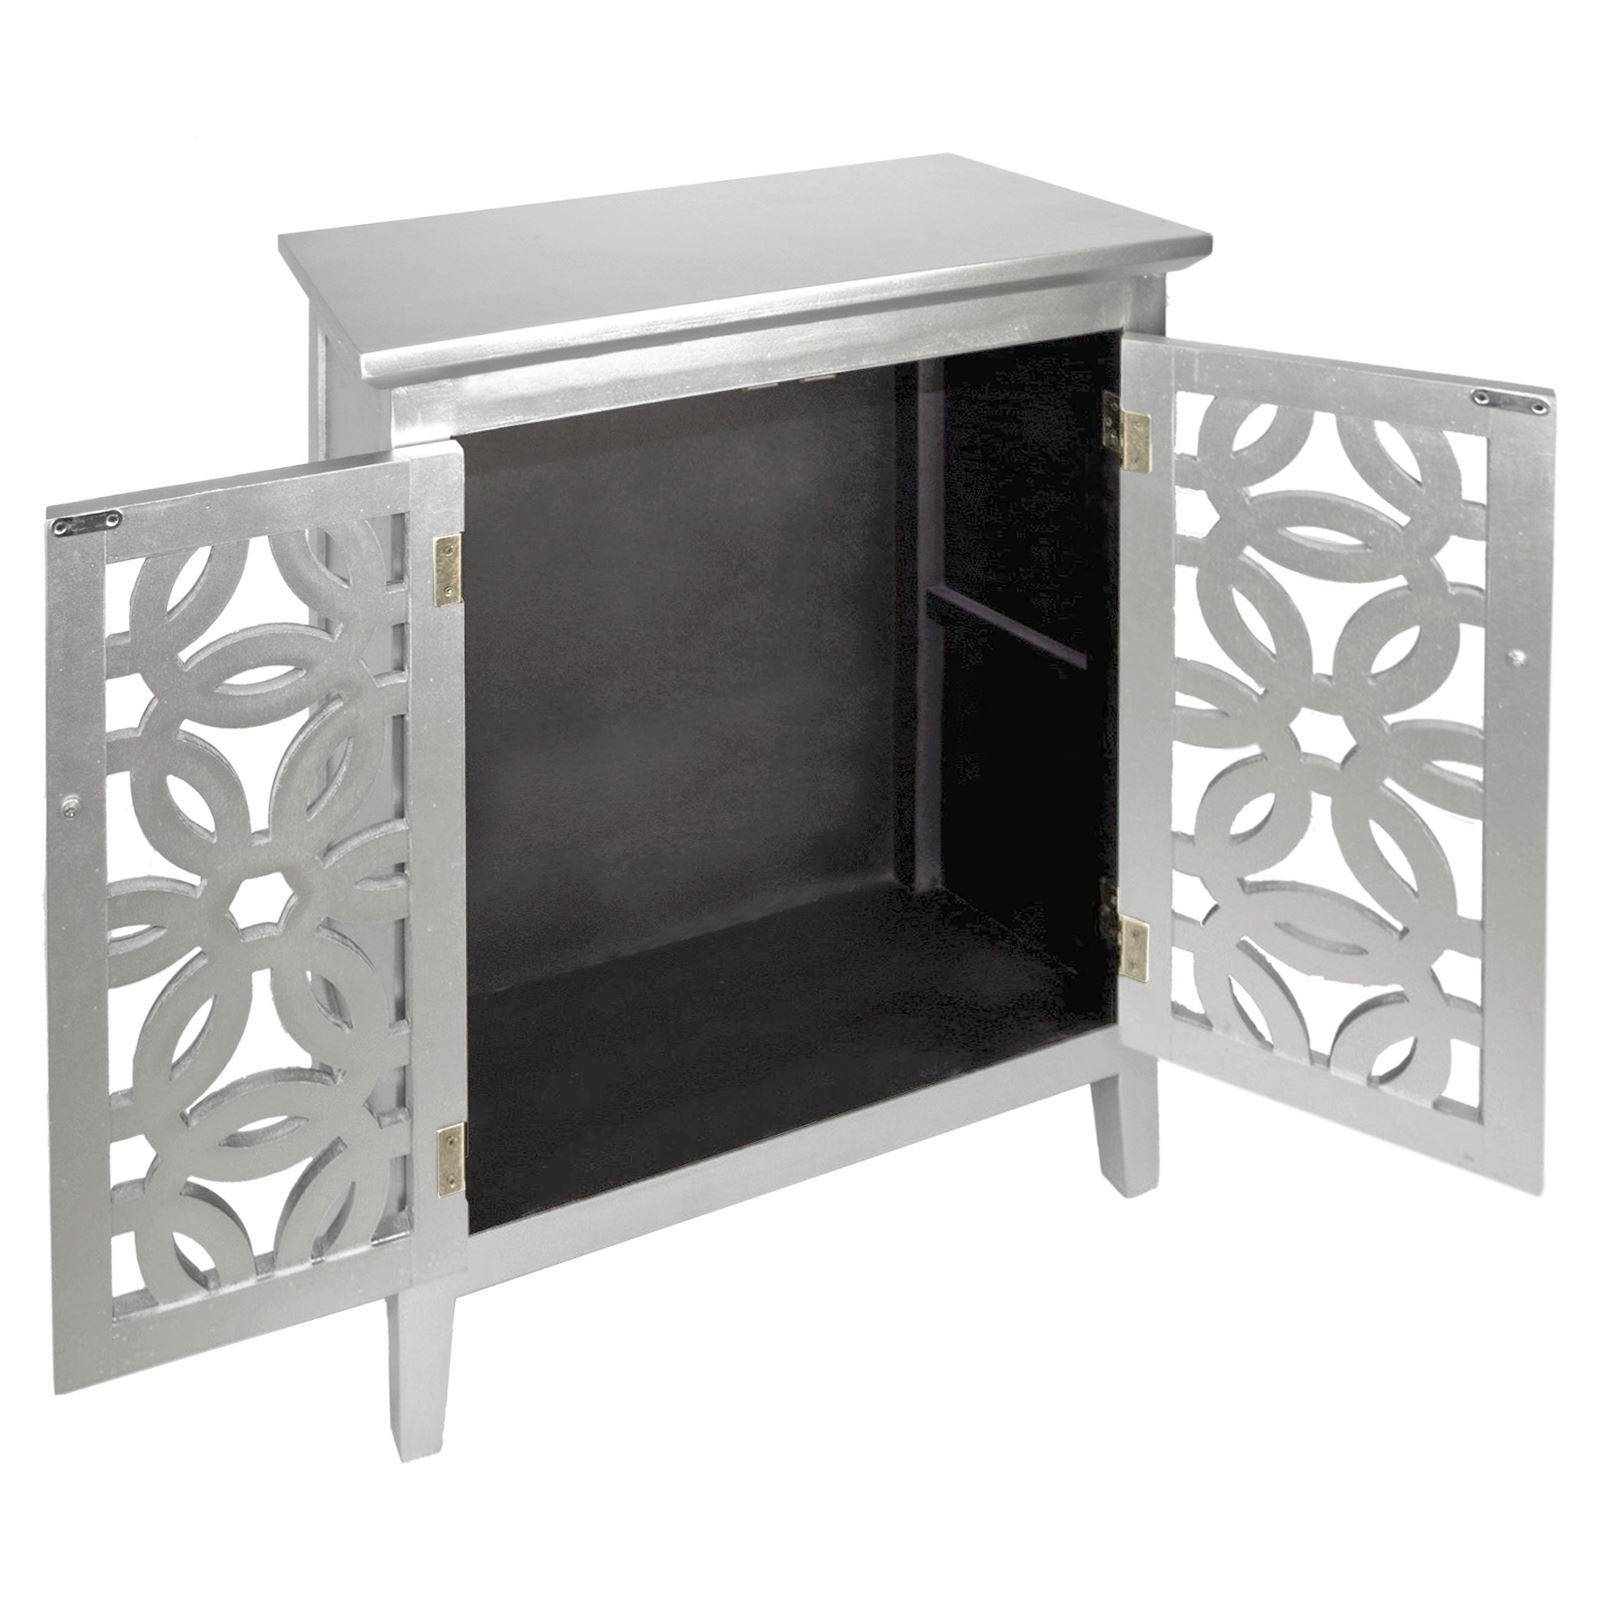 Art Deco Style Mirrored Drinks Cabinet Storage Unit Mirror Fronted Inside Black And Silver Sideboard (#3 of 20)